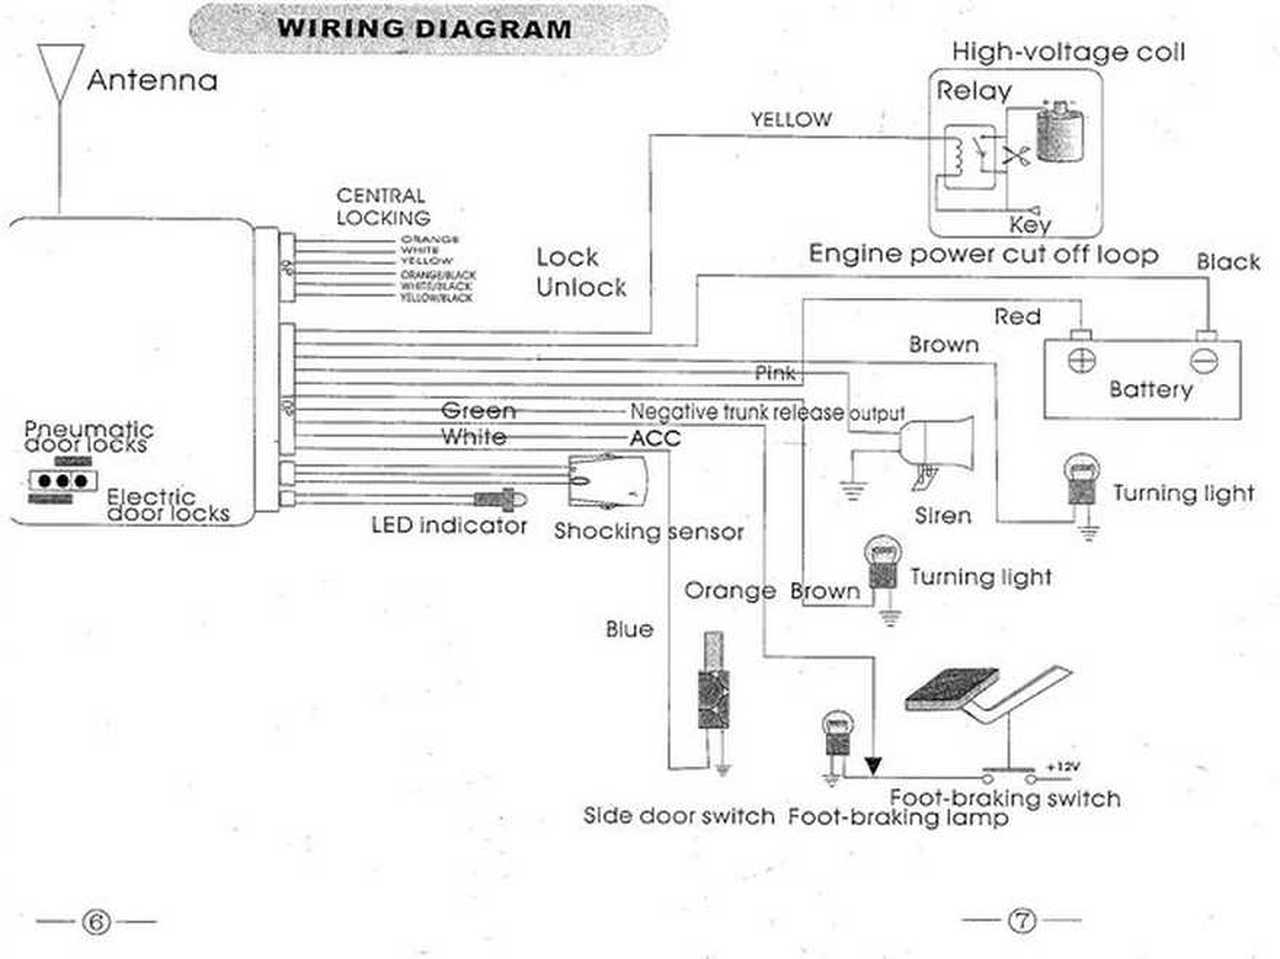 diagram] bmw z3 central locking wiring diagram full version hd ...  fnapeetht.fr